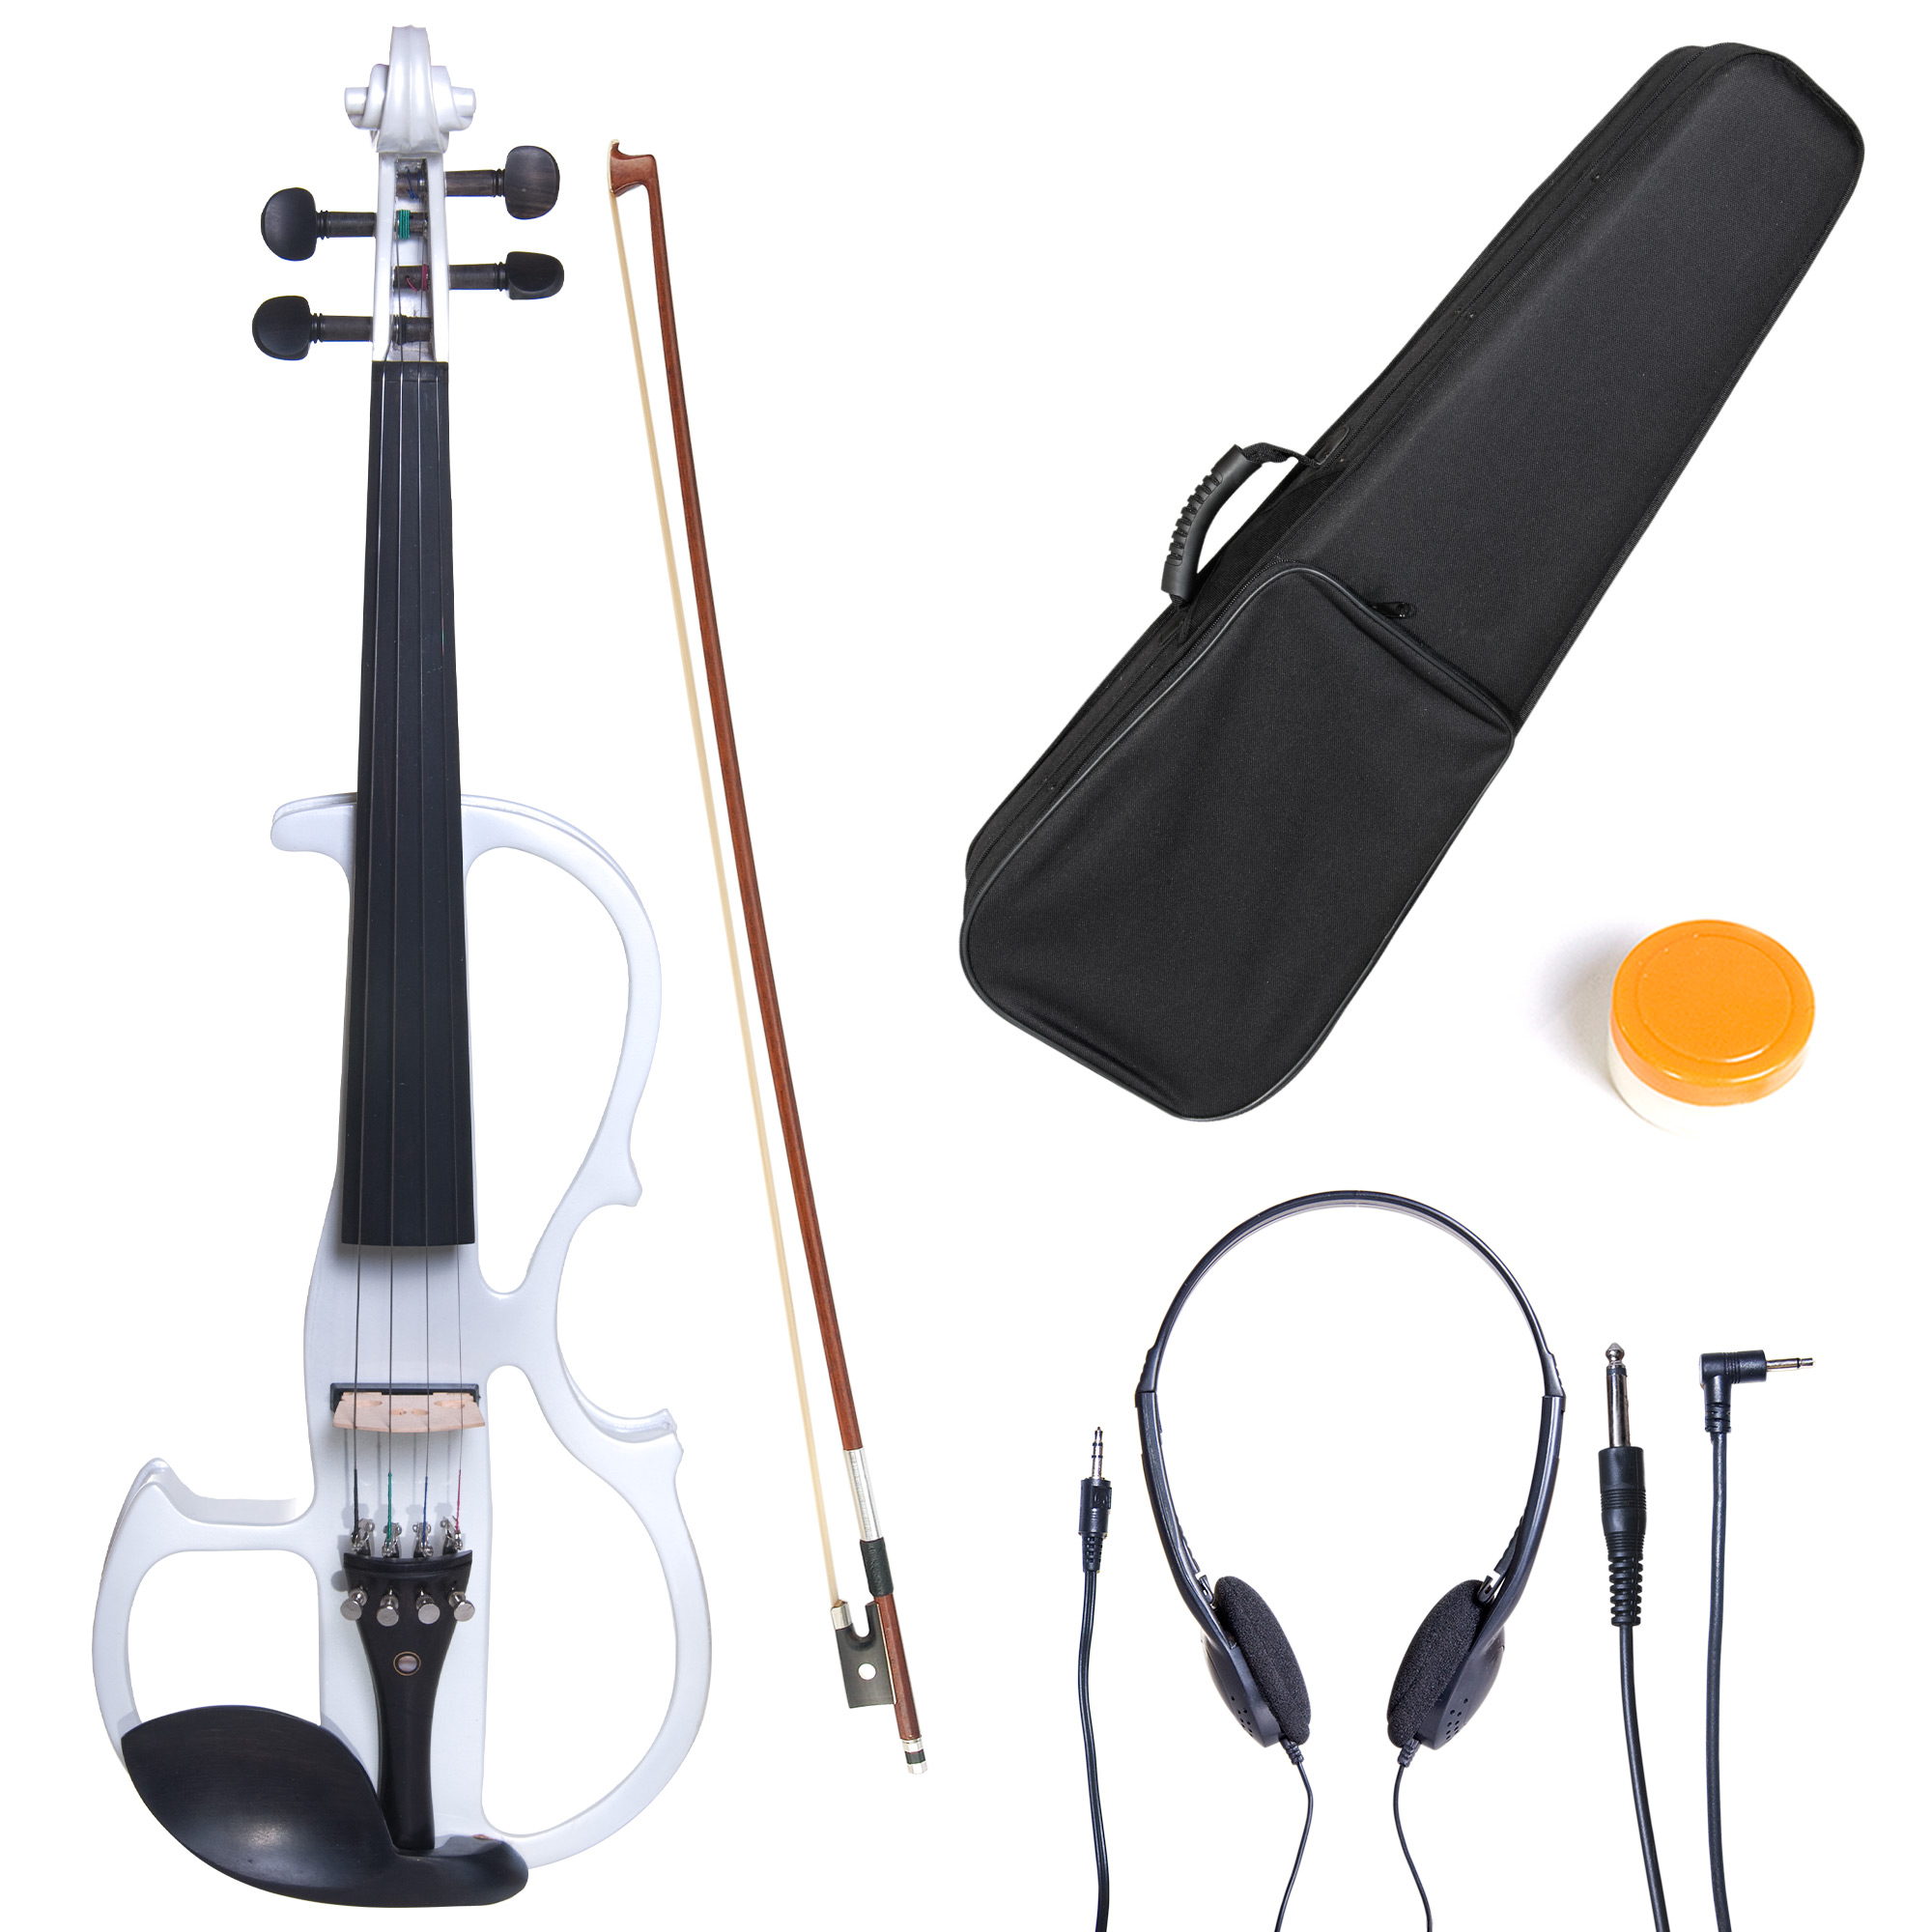 Cecilio Size 3/4 CEVN-2W Solidwood Pearl White Electric/Silent Violin with Ebony Fittings